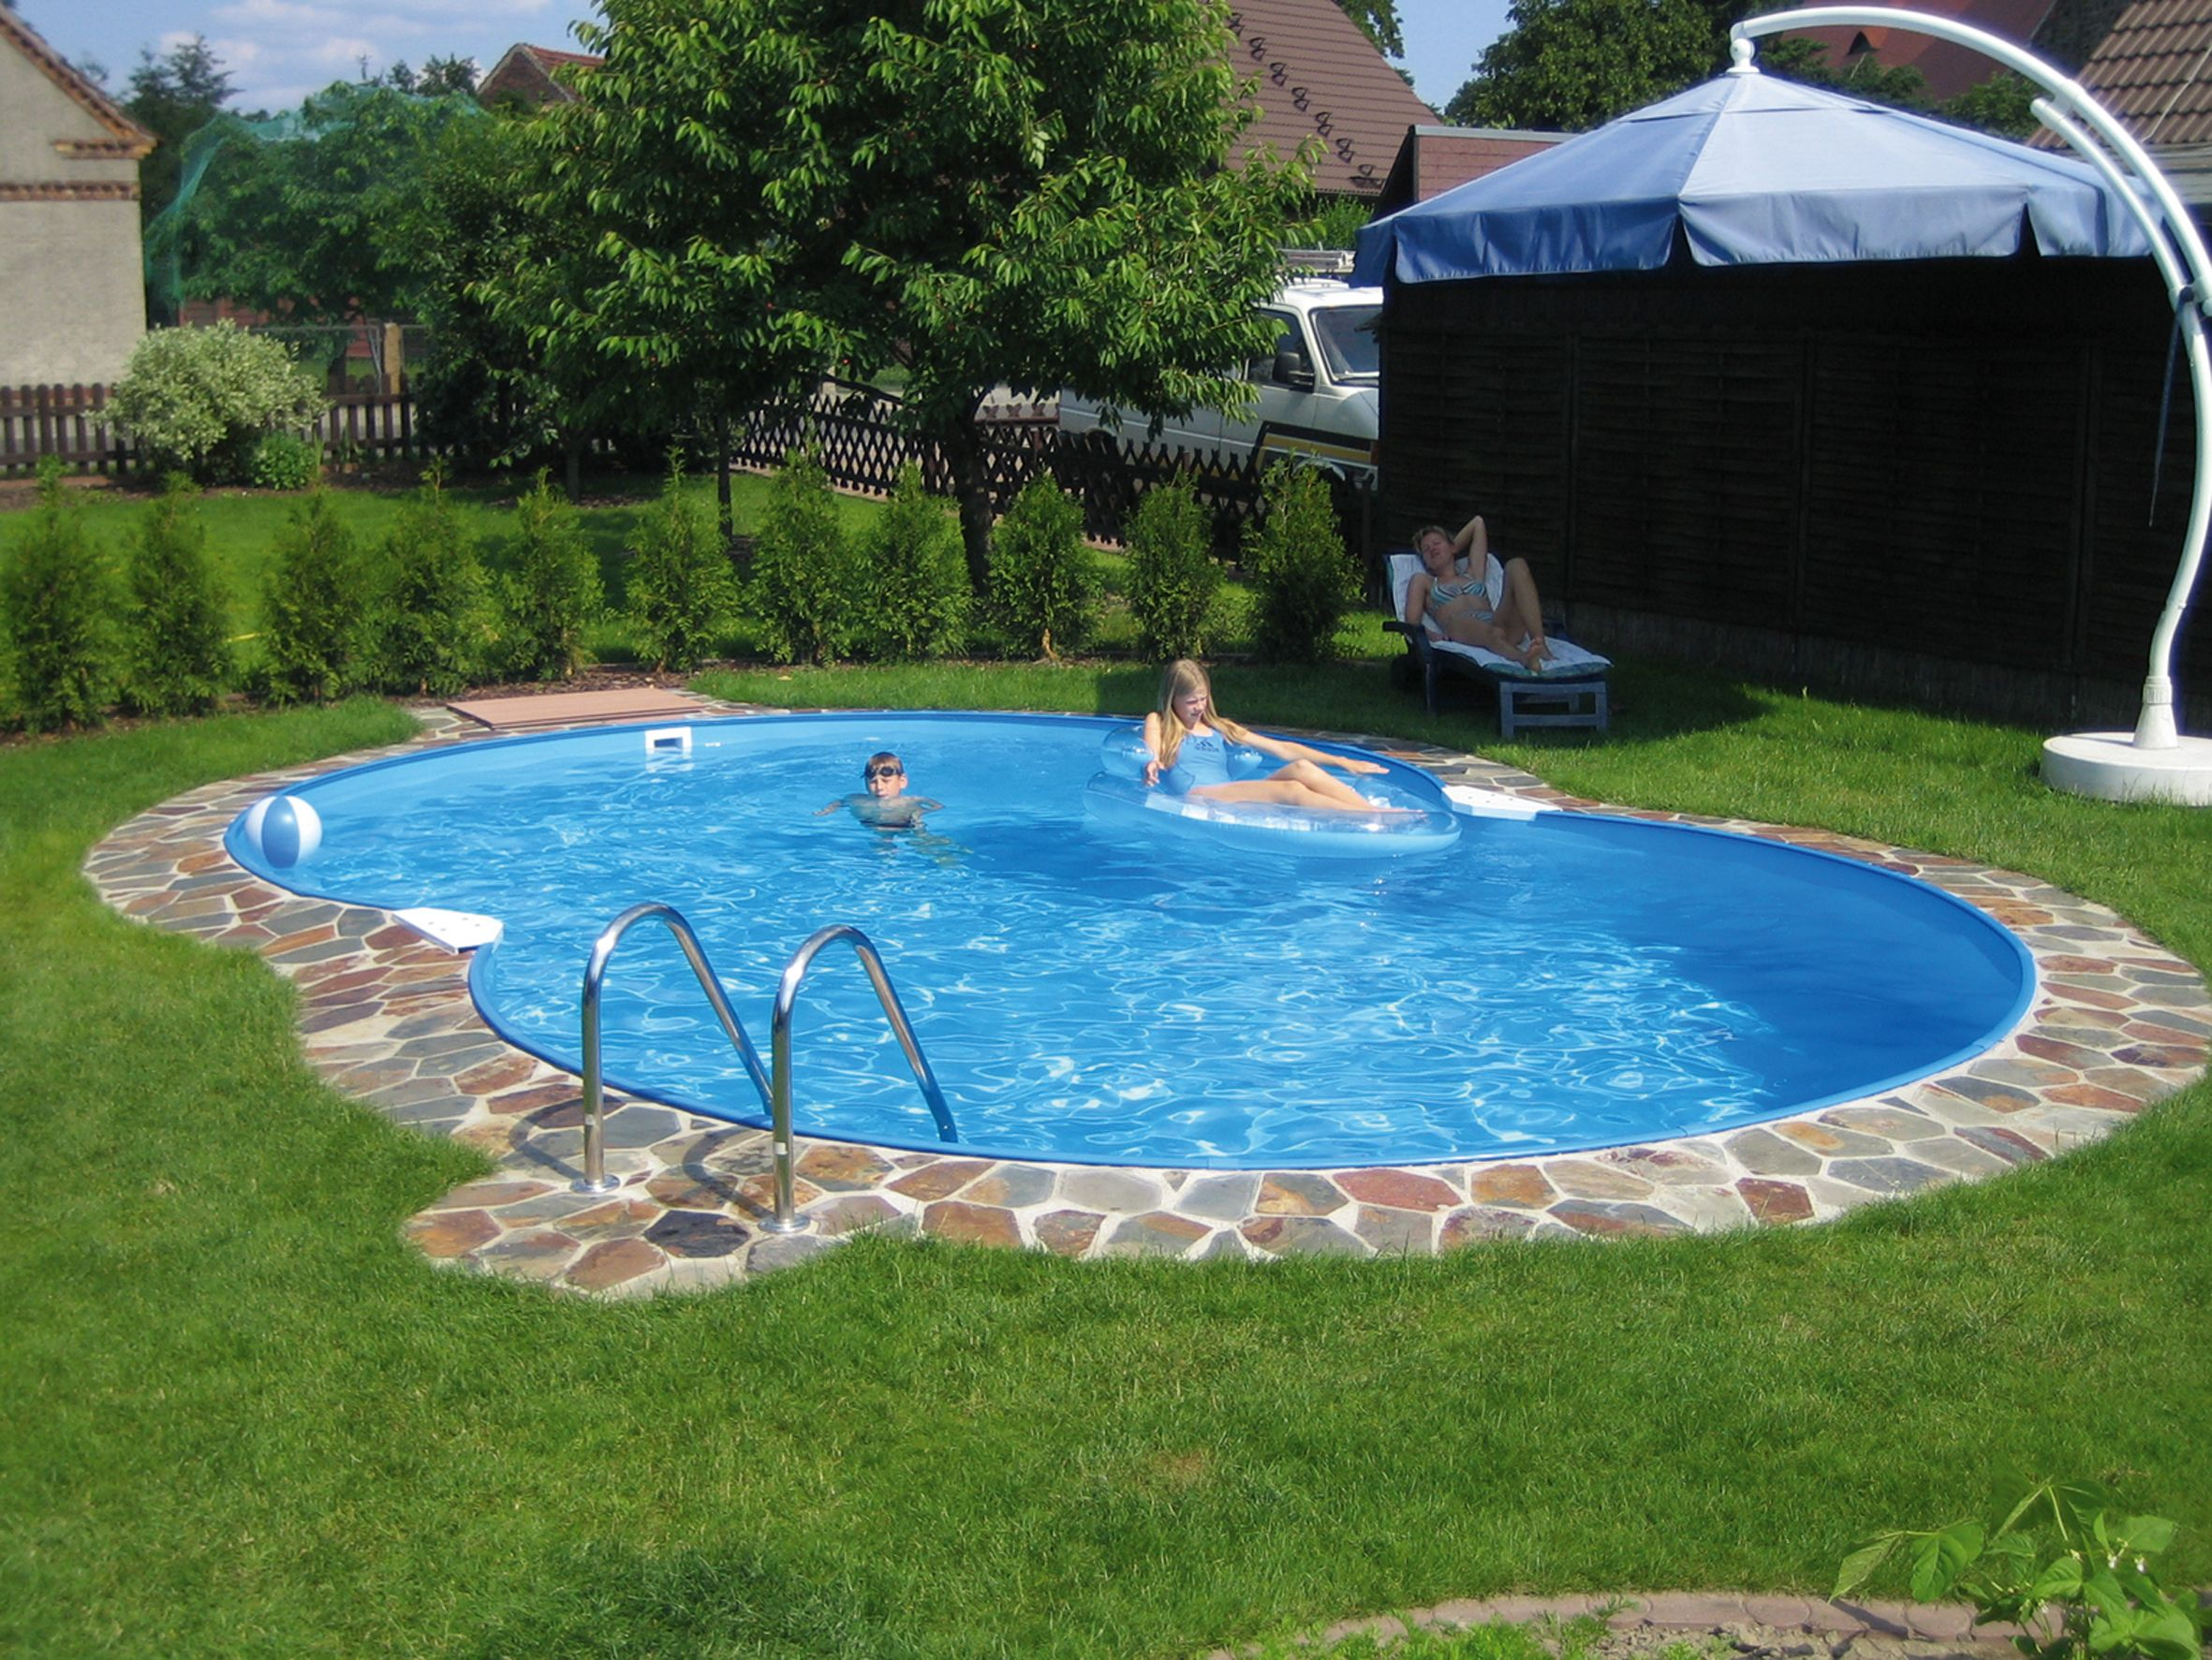 backyard landscaping ideas swimming pool design read more at wwwhomestheticsnet - Inground Pool Designs Ideas